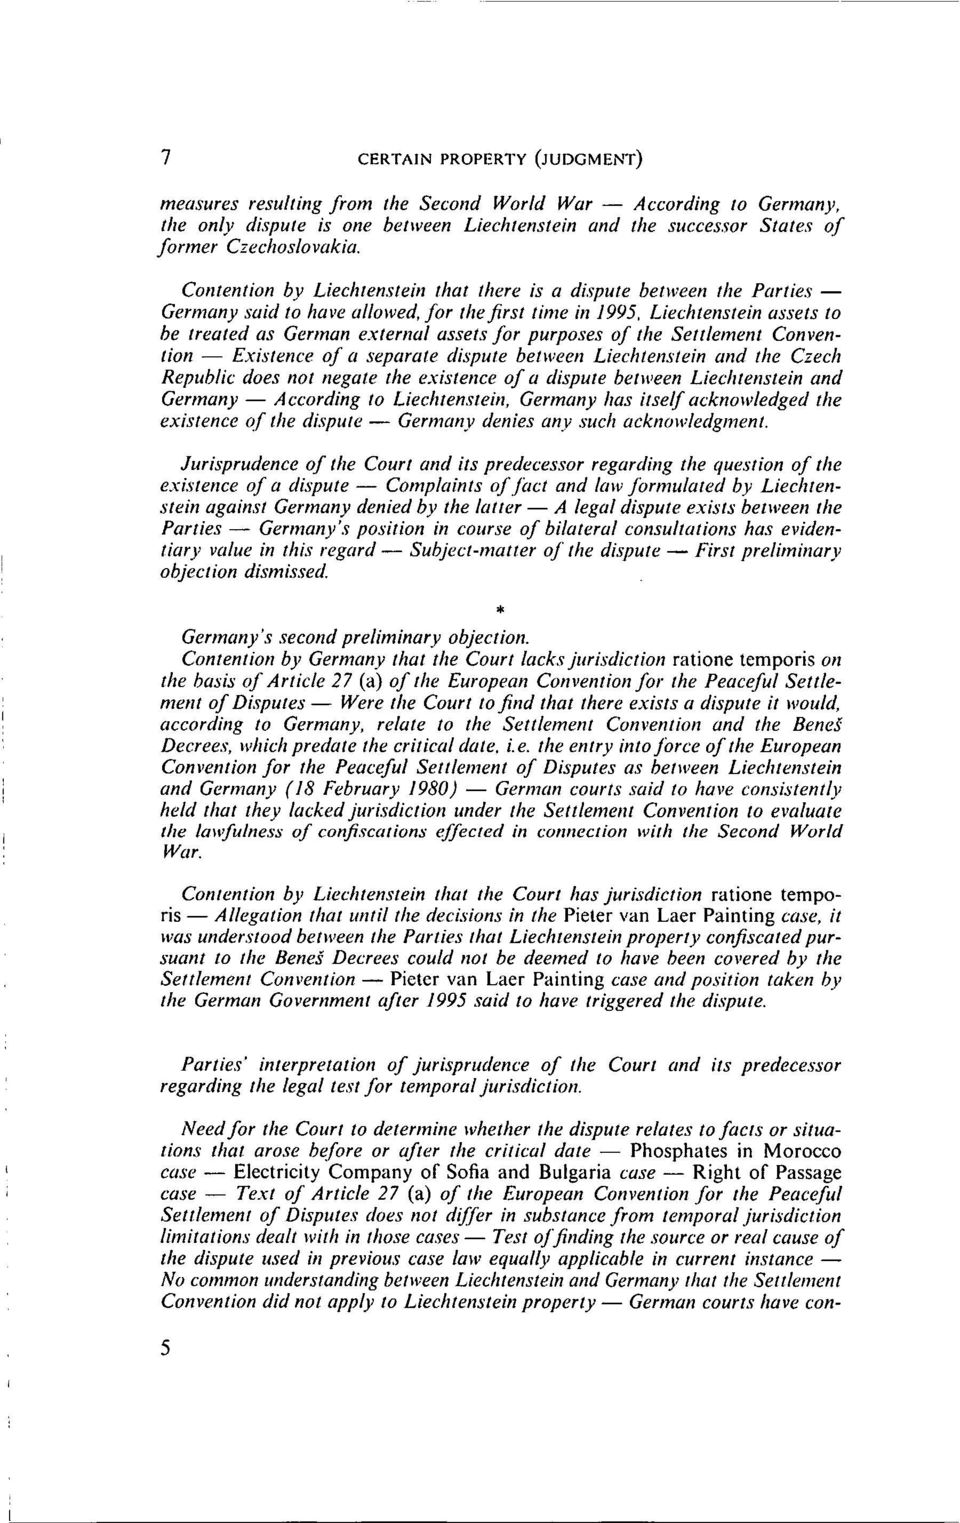 purposes of the Settlement Convention - Existence of a separa te dispute between Liechtenstein and the Czech Republic does not negate the existence of a dispute between Liechtenstein and Germany -